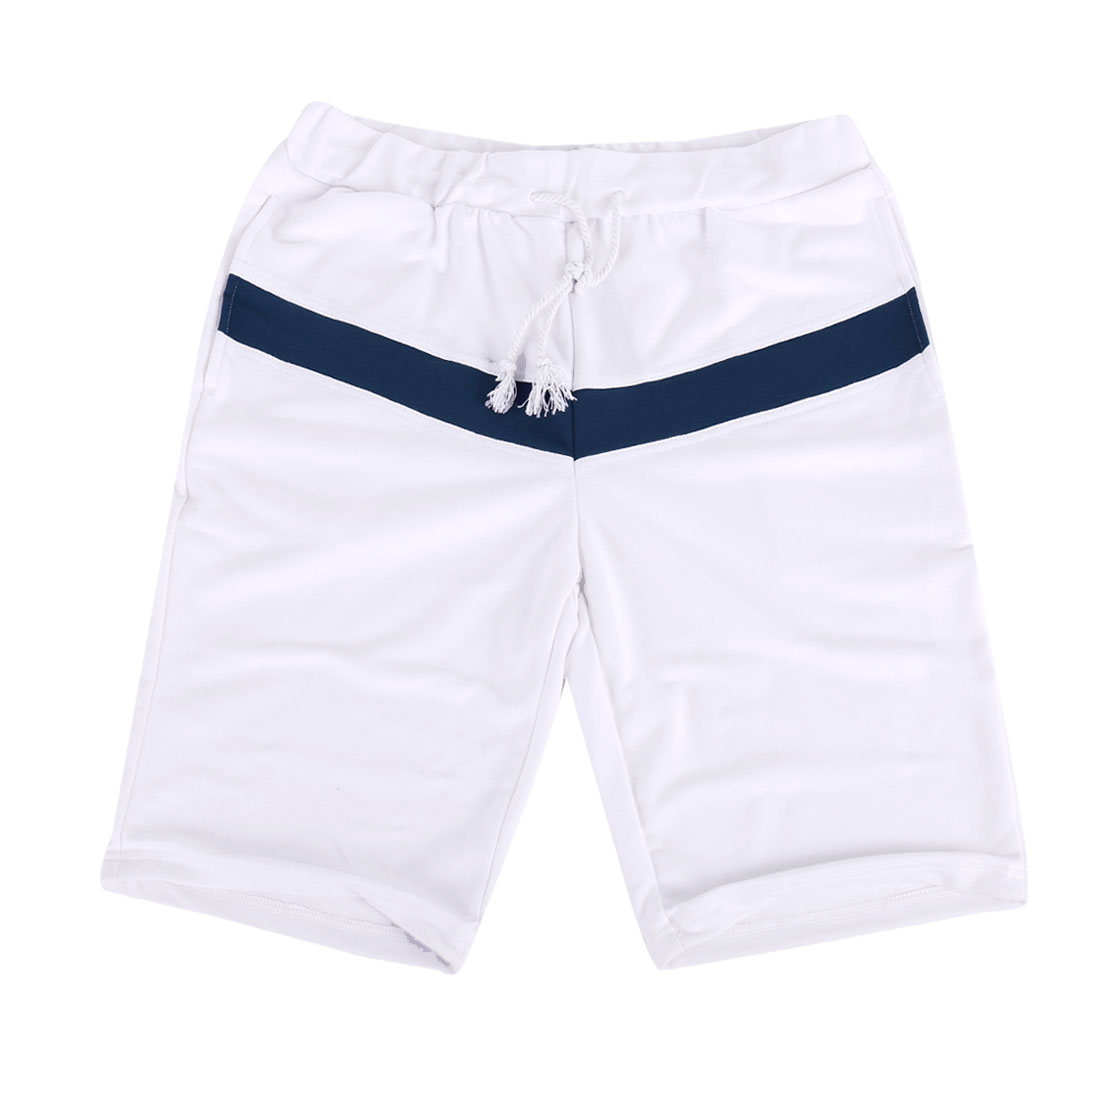 Men Stretchy Adjustable Drawstring Chic Short Pants White W31